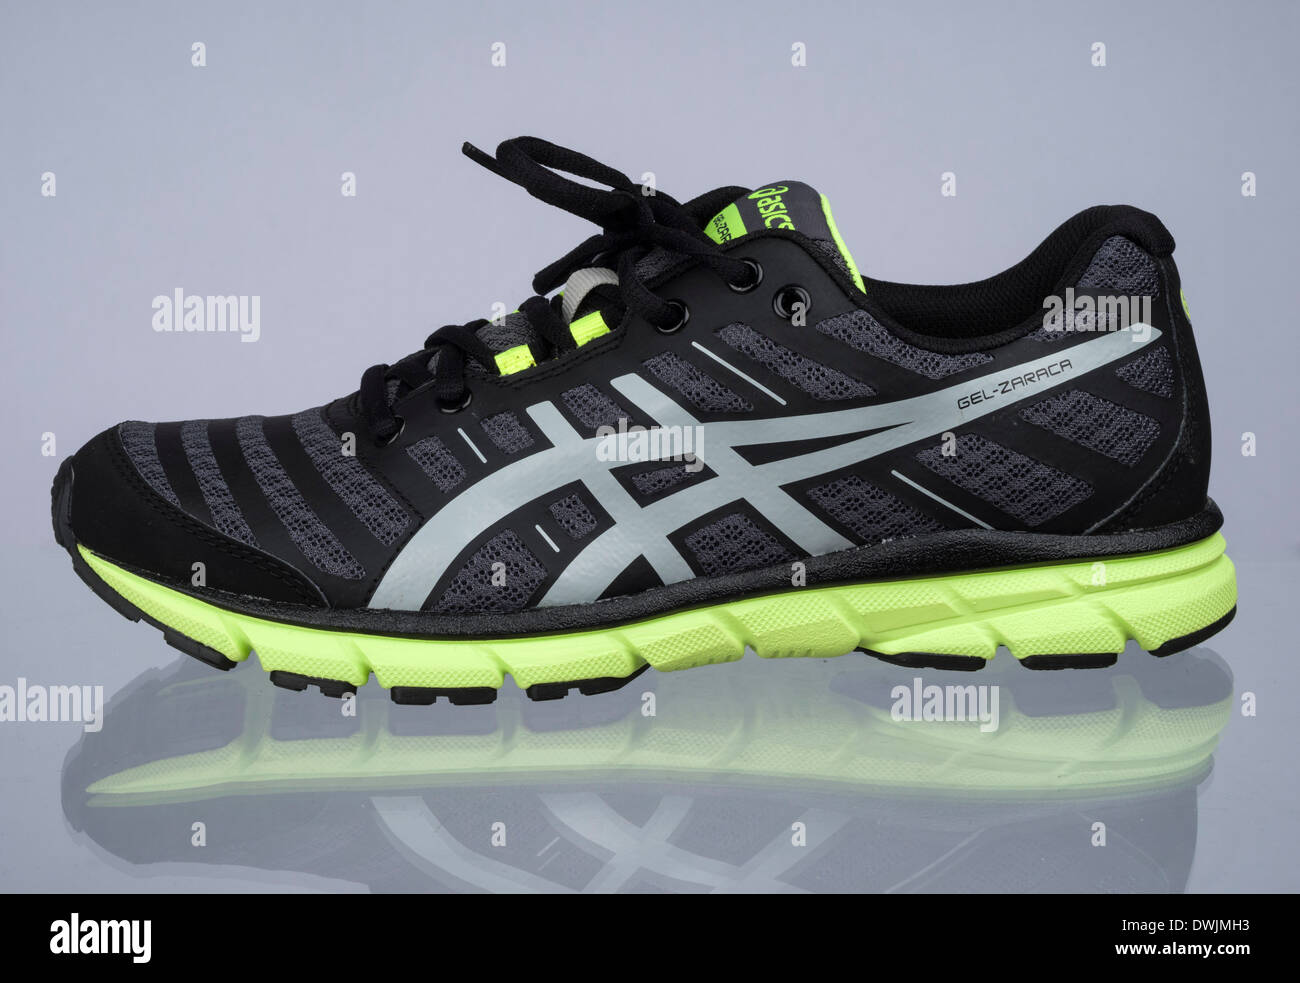 huge discount elegant and sturdy package retail prices Black and neon green Asics Gel Zaraca 2 running shoe Stock ...